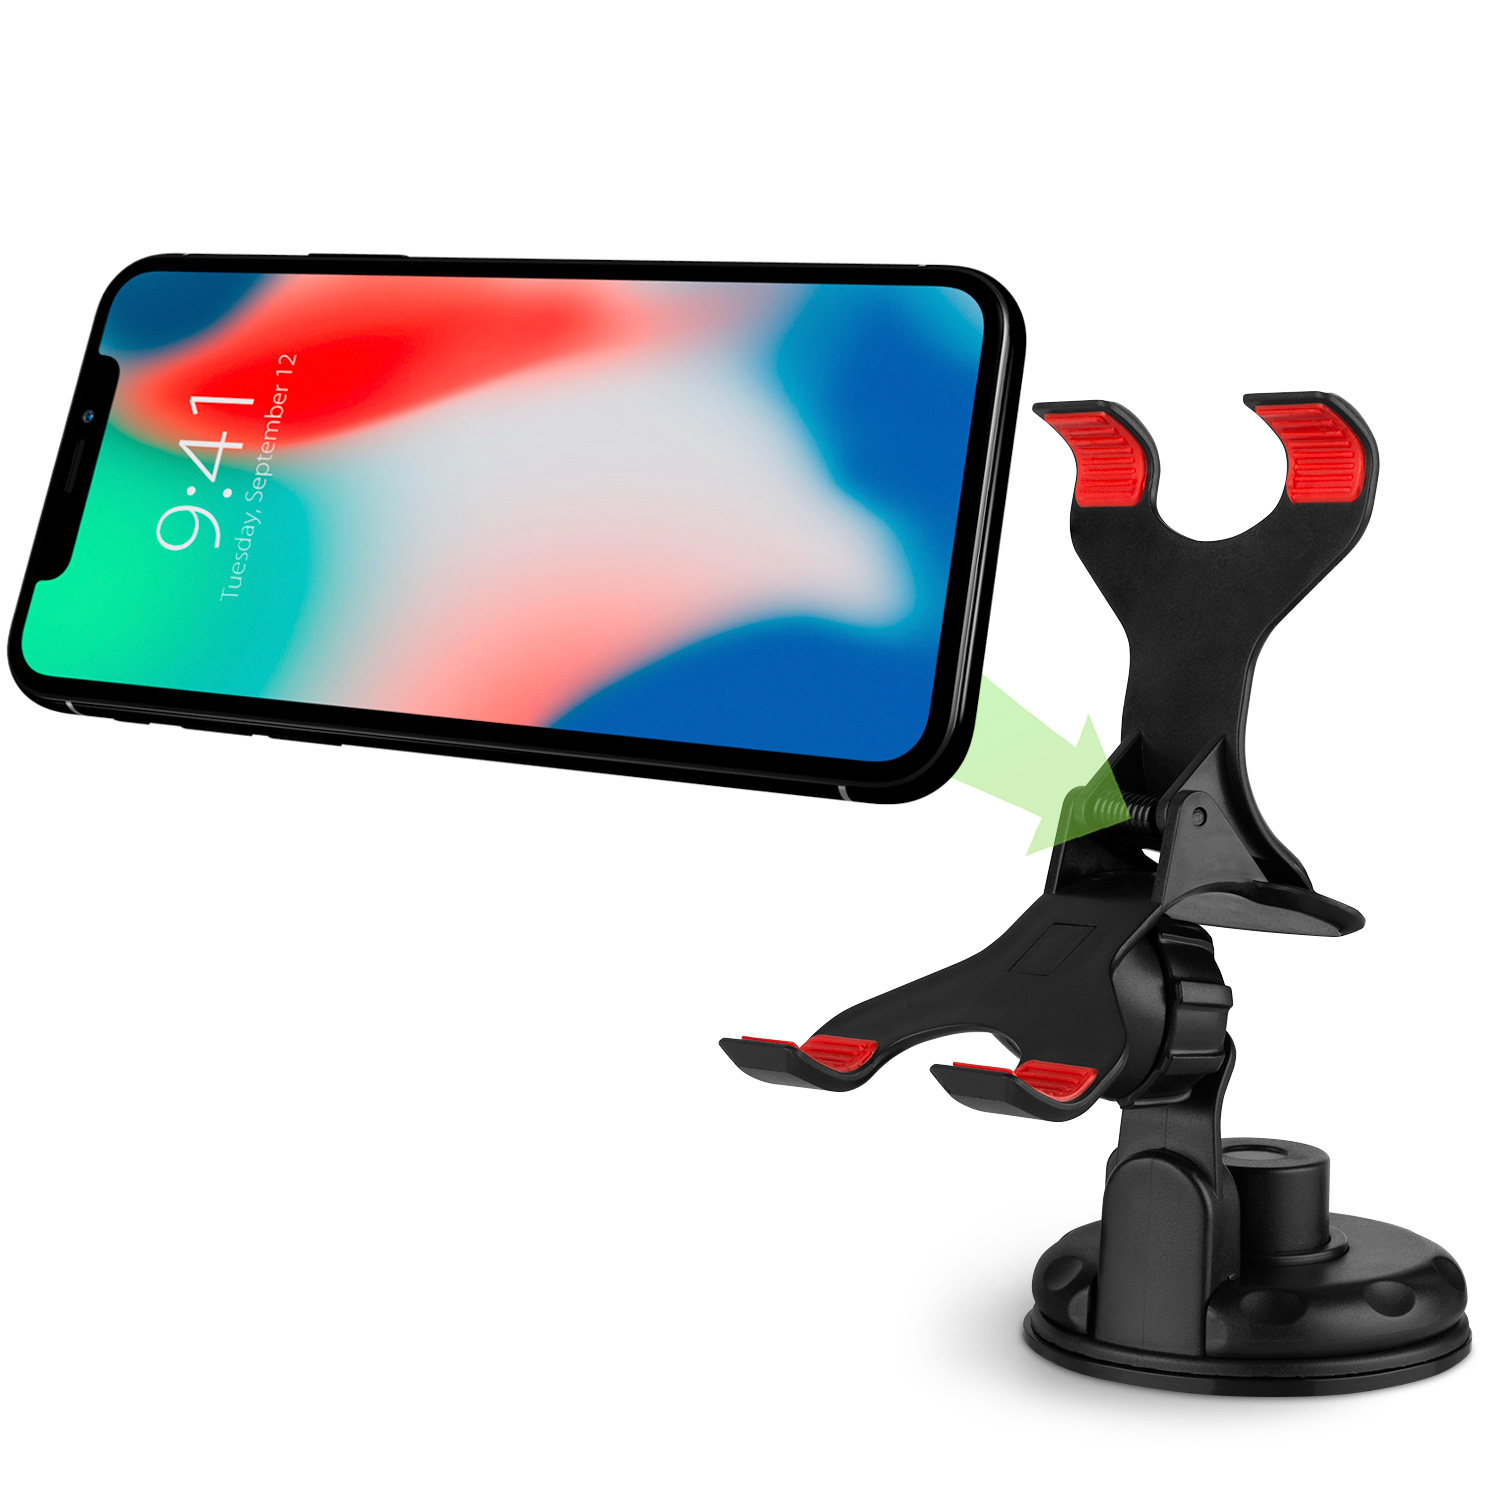 Vena Clip Grip Car Mount Holder with Sticky Sunction Cup for Apple iPhone, Samsung, HTC, LG Smartphones -Up To 90mm Wide